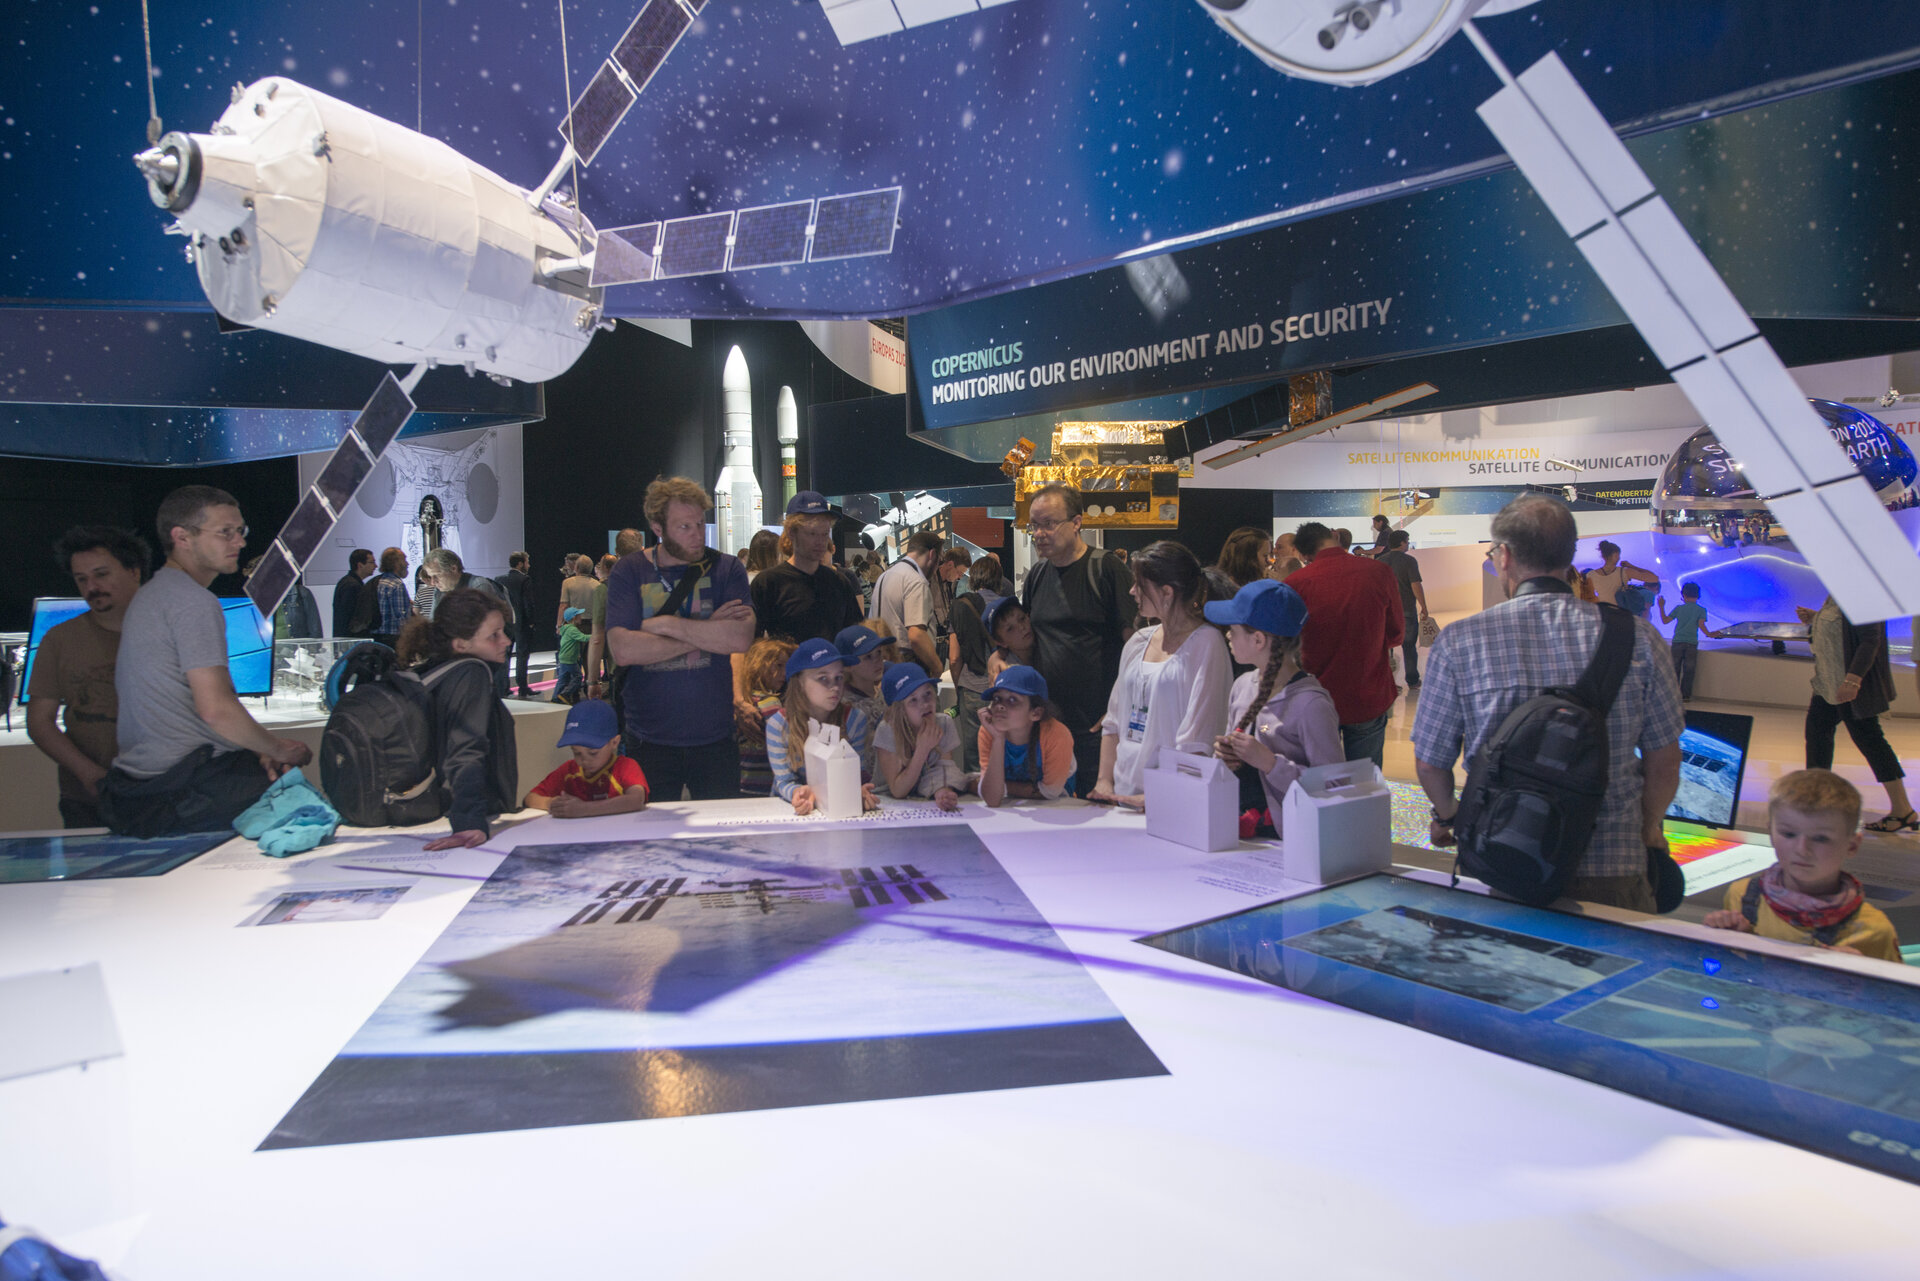 Public day at the 'Space for Earth' pavilion at ILA